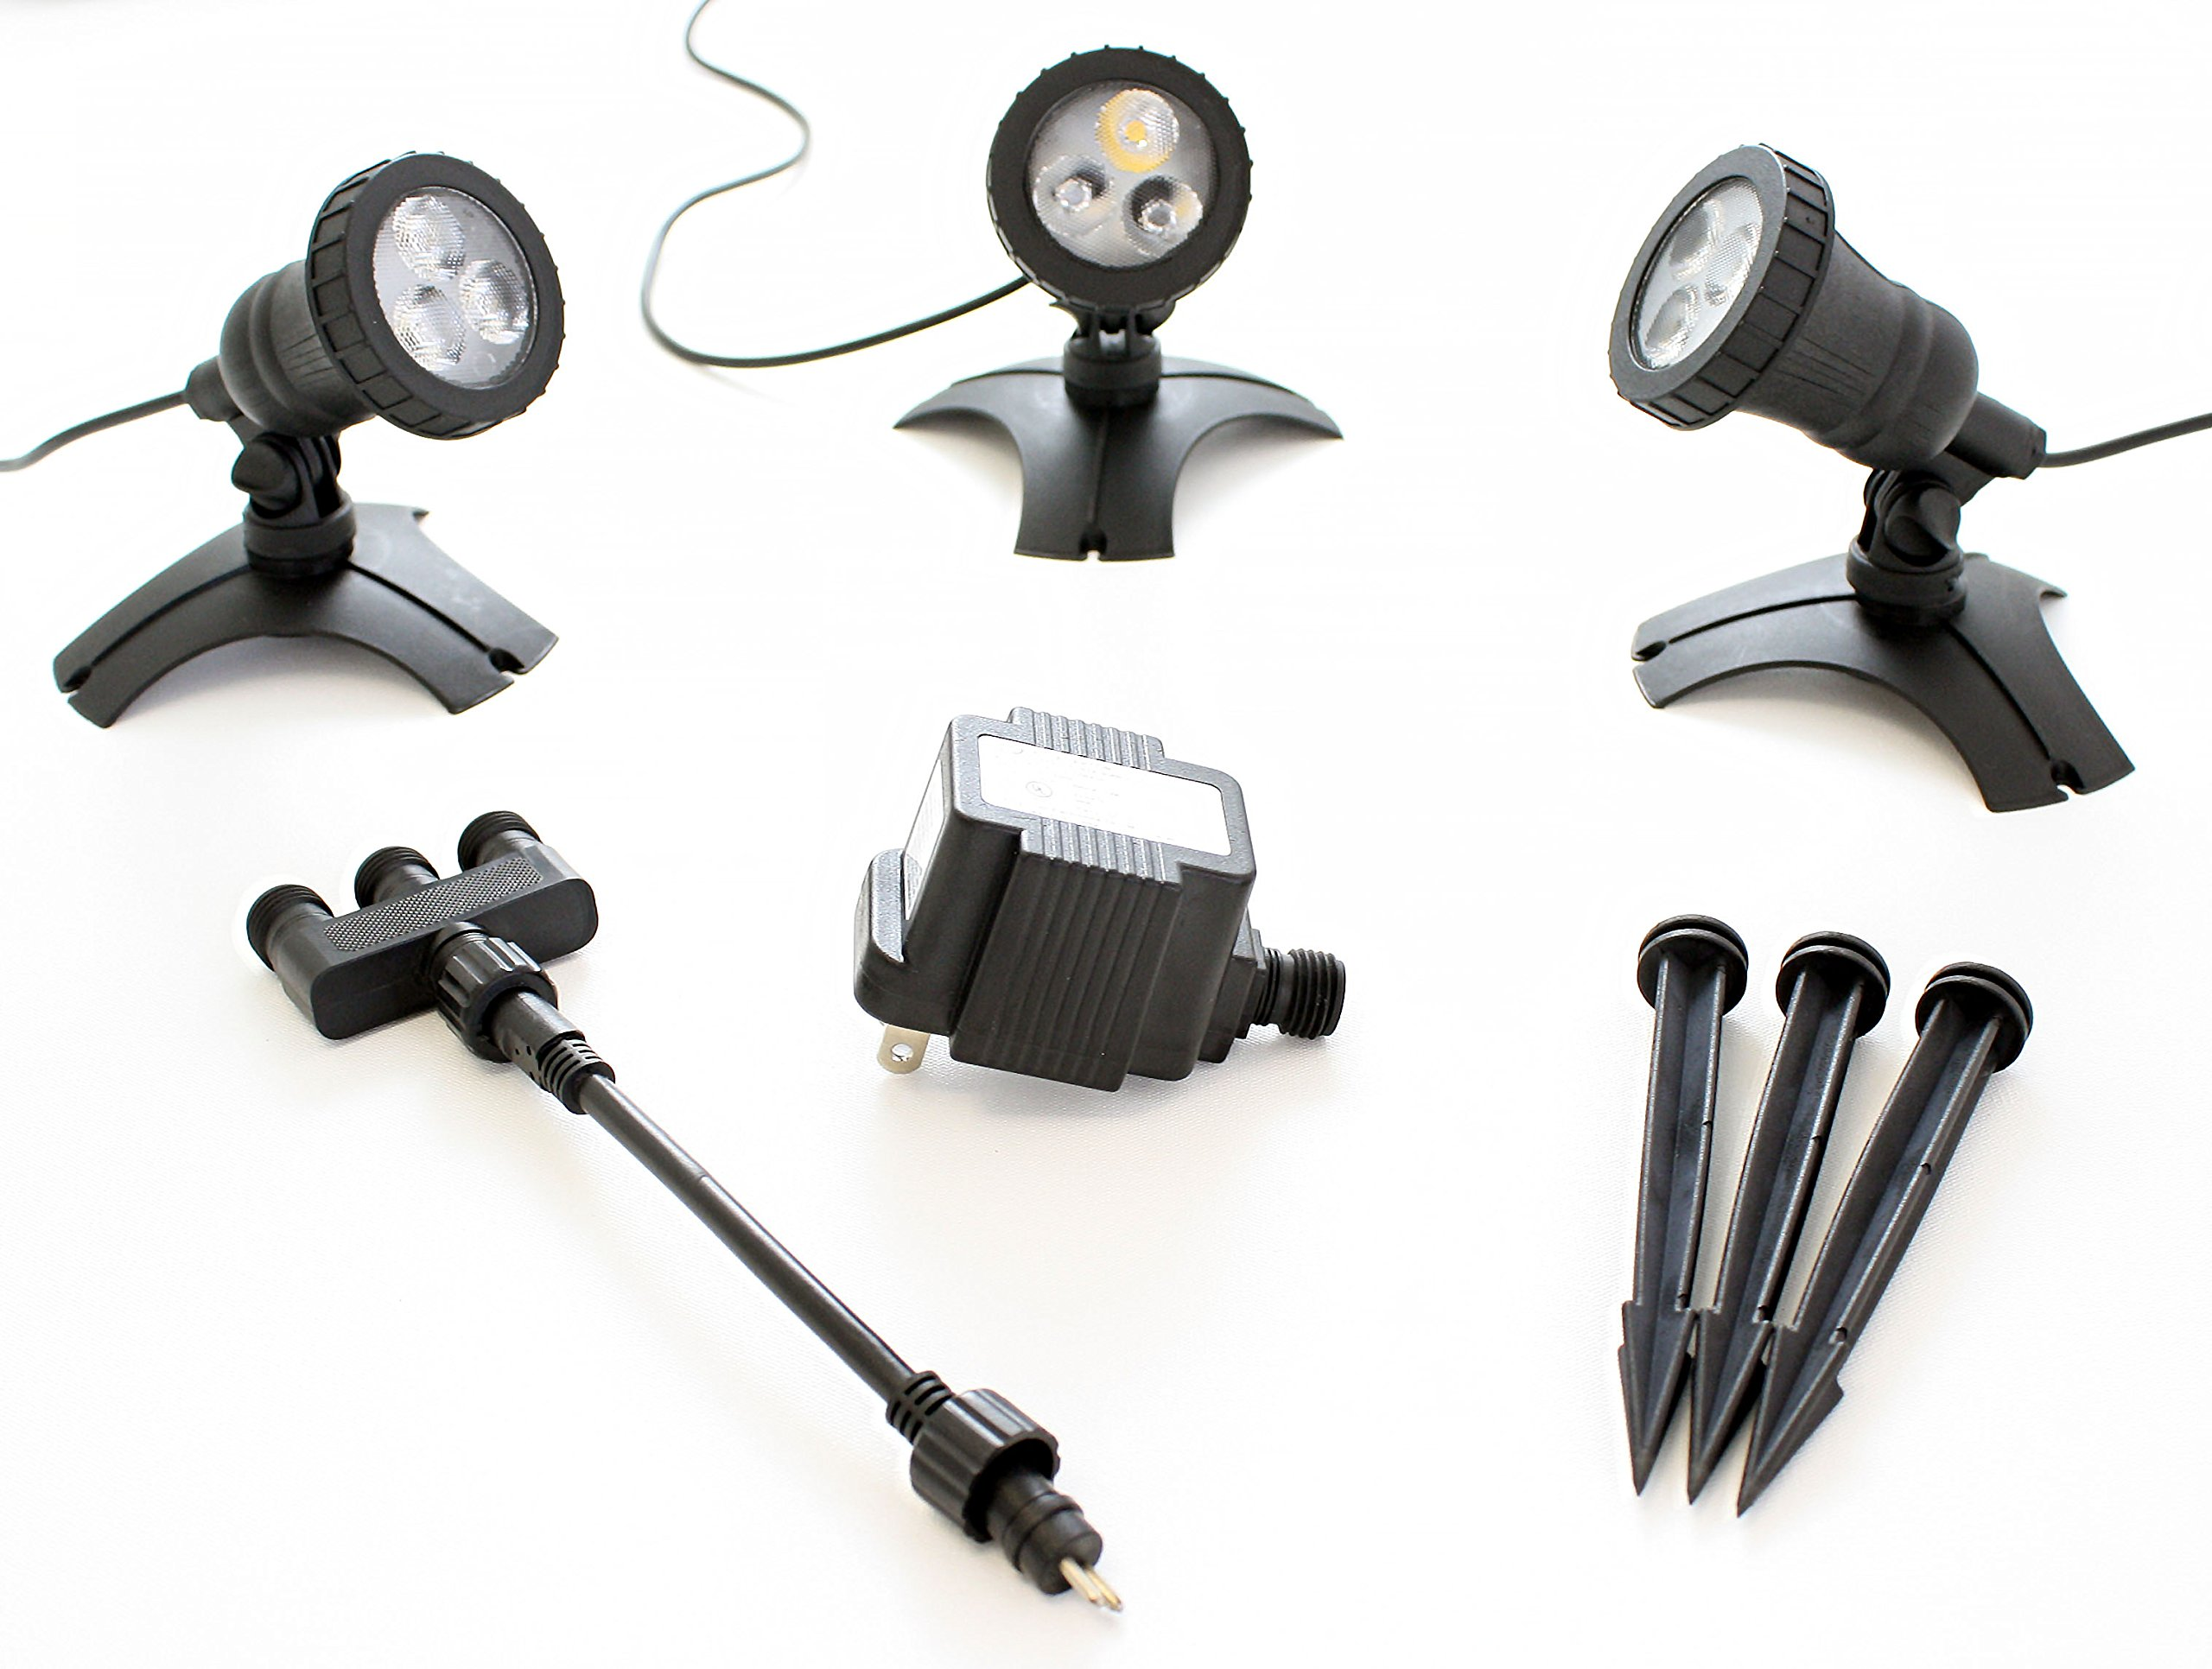 Pond Force LED Pond Light Kit (3 Light Kit)